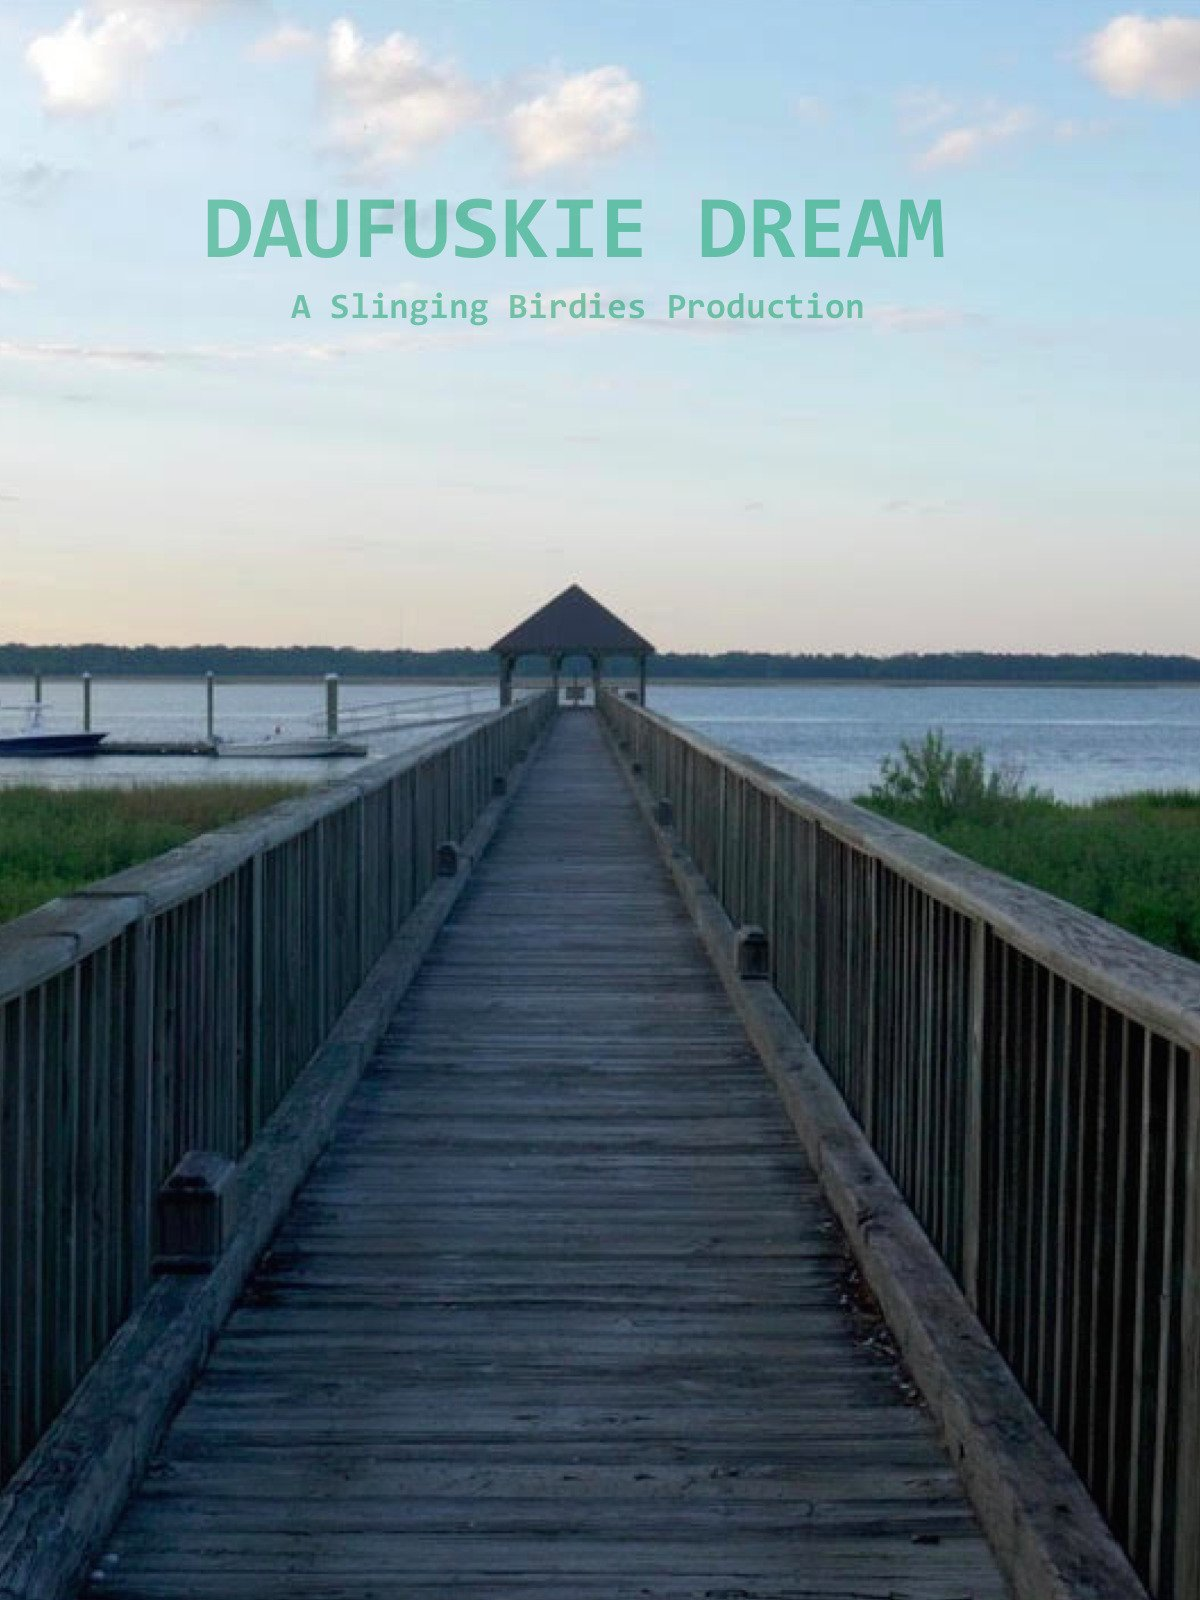 Daufuskie Dream